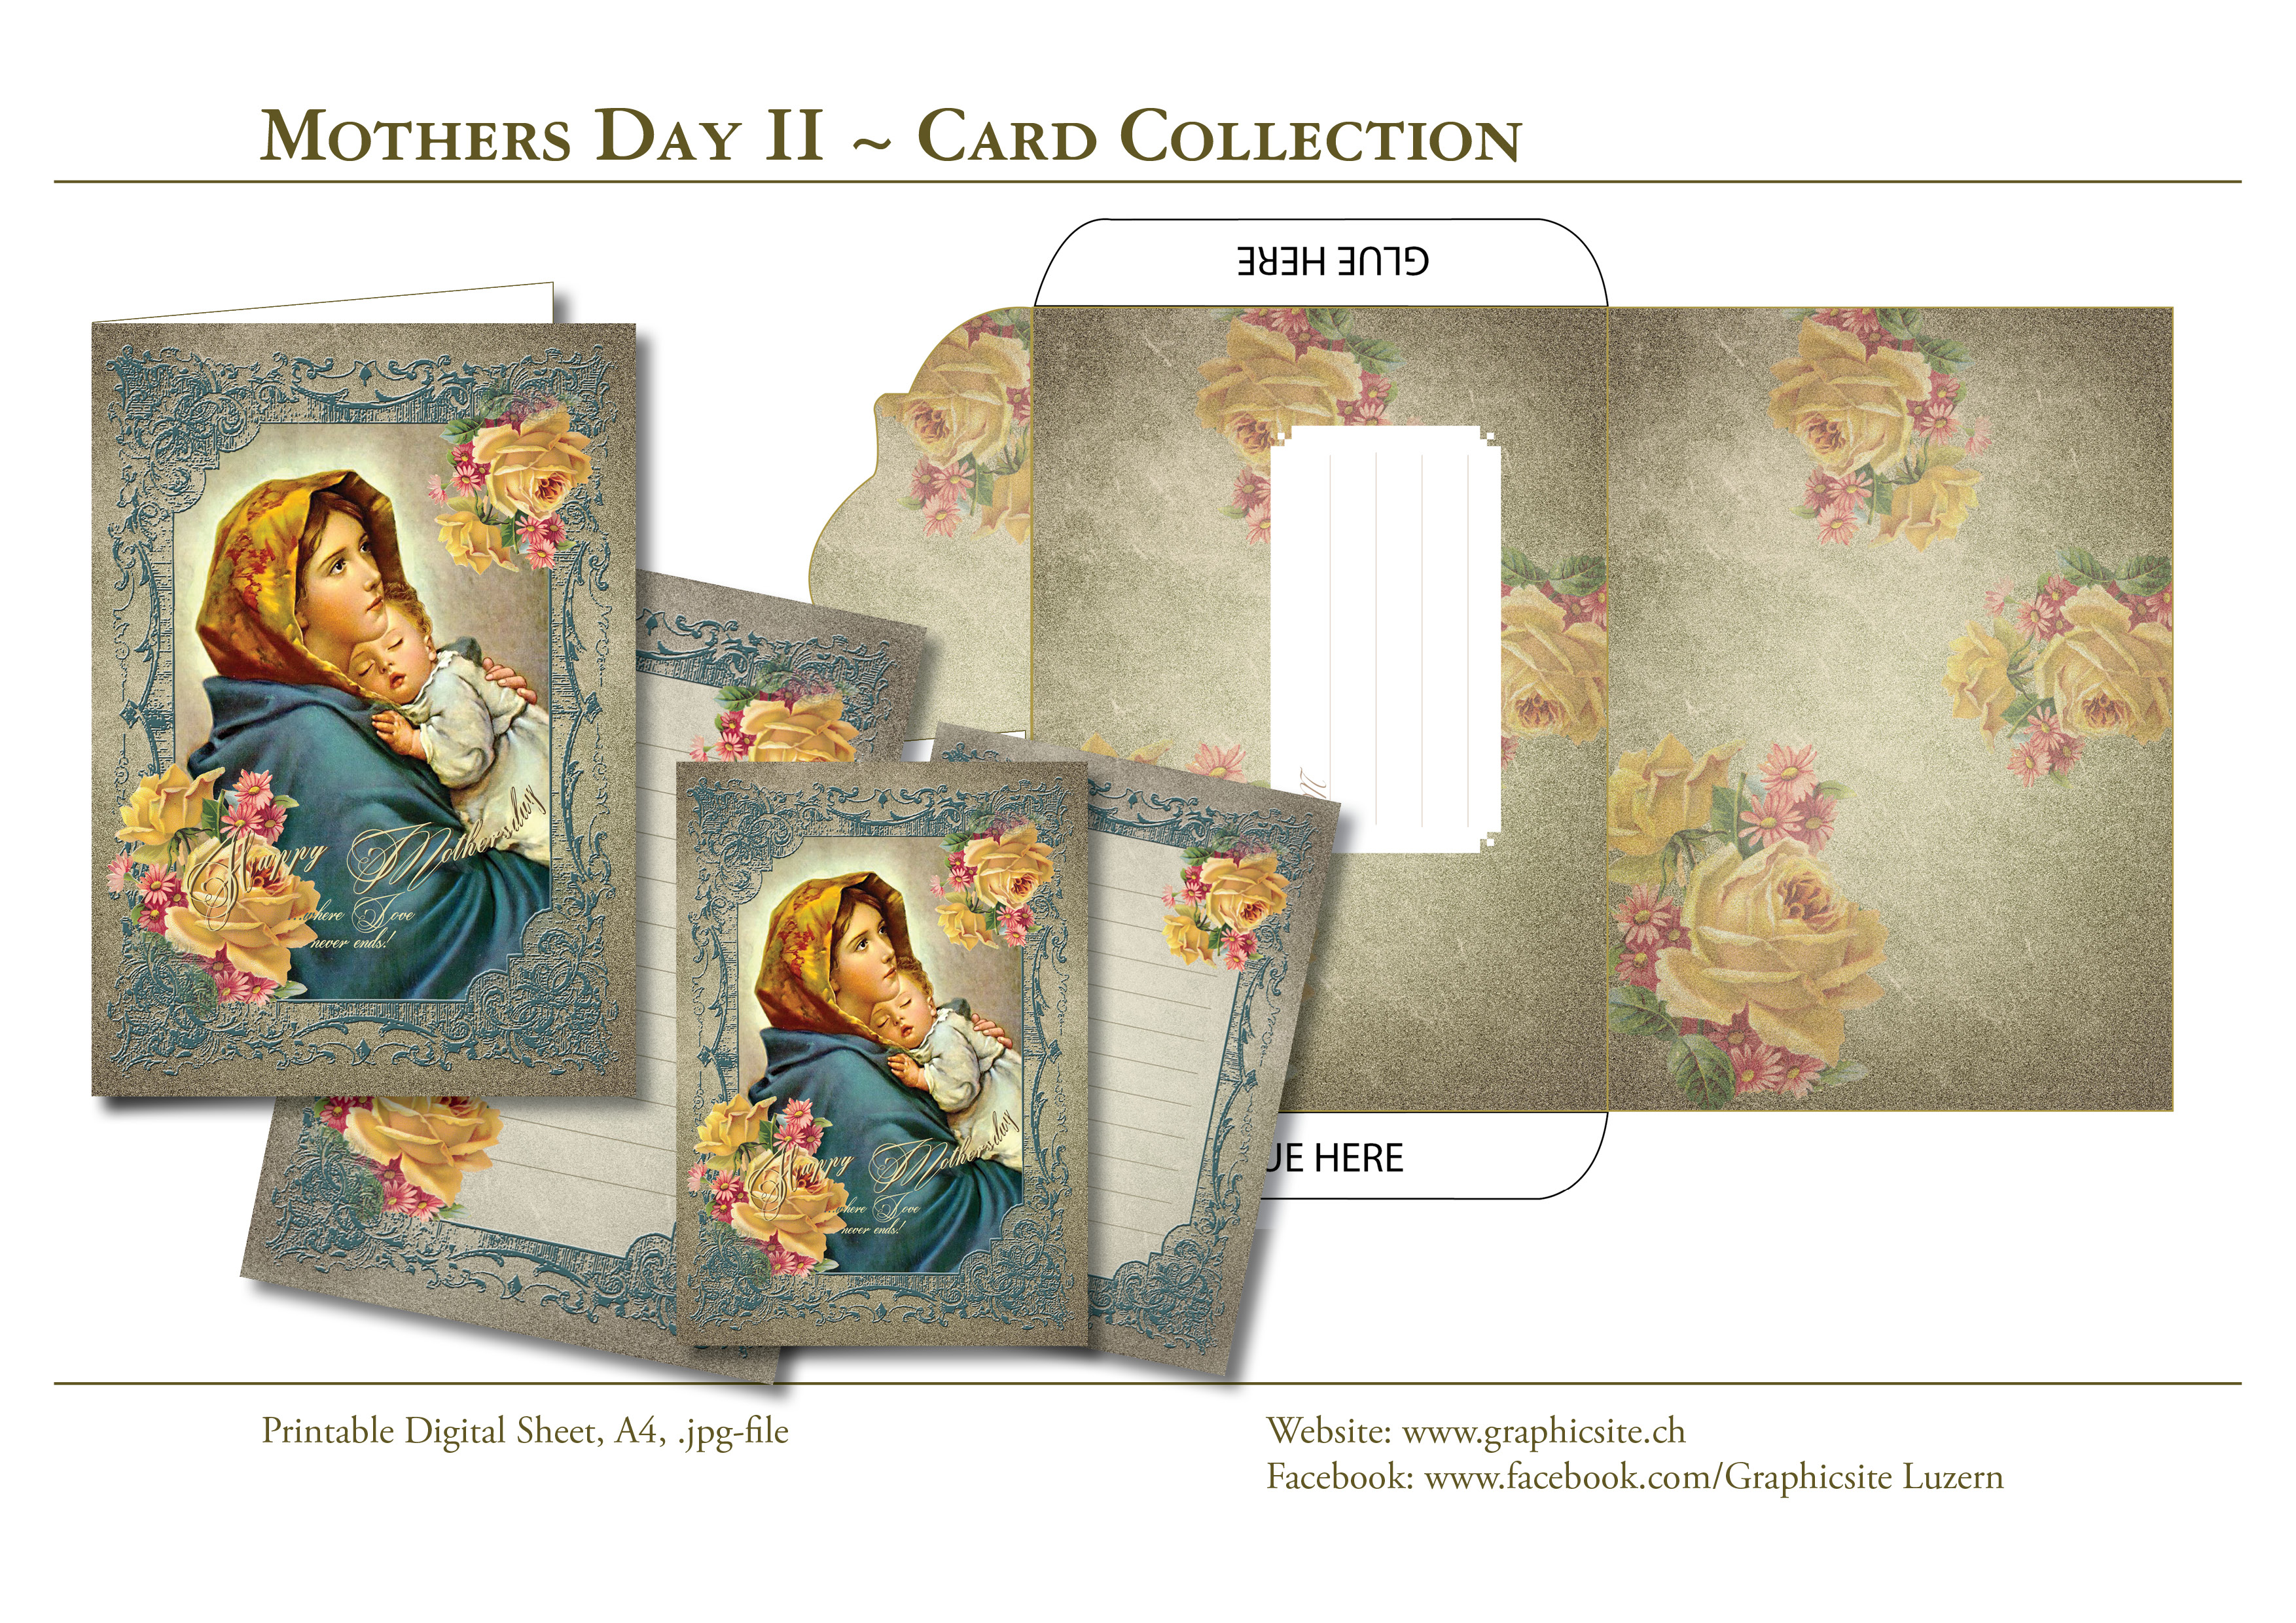 Printable Digital Sheets - Mothersday2 - Card Collection - #mothersday, #mother, #mom, #greetingcards, #graphicdesign, #luzern, #schweiz